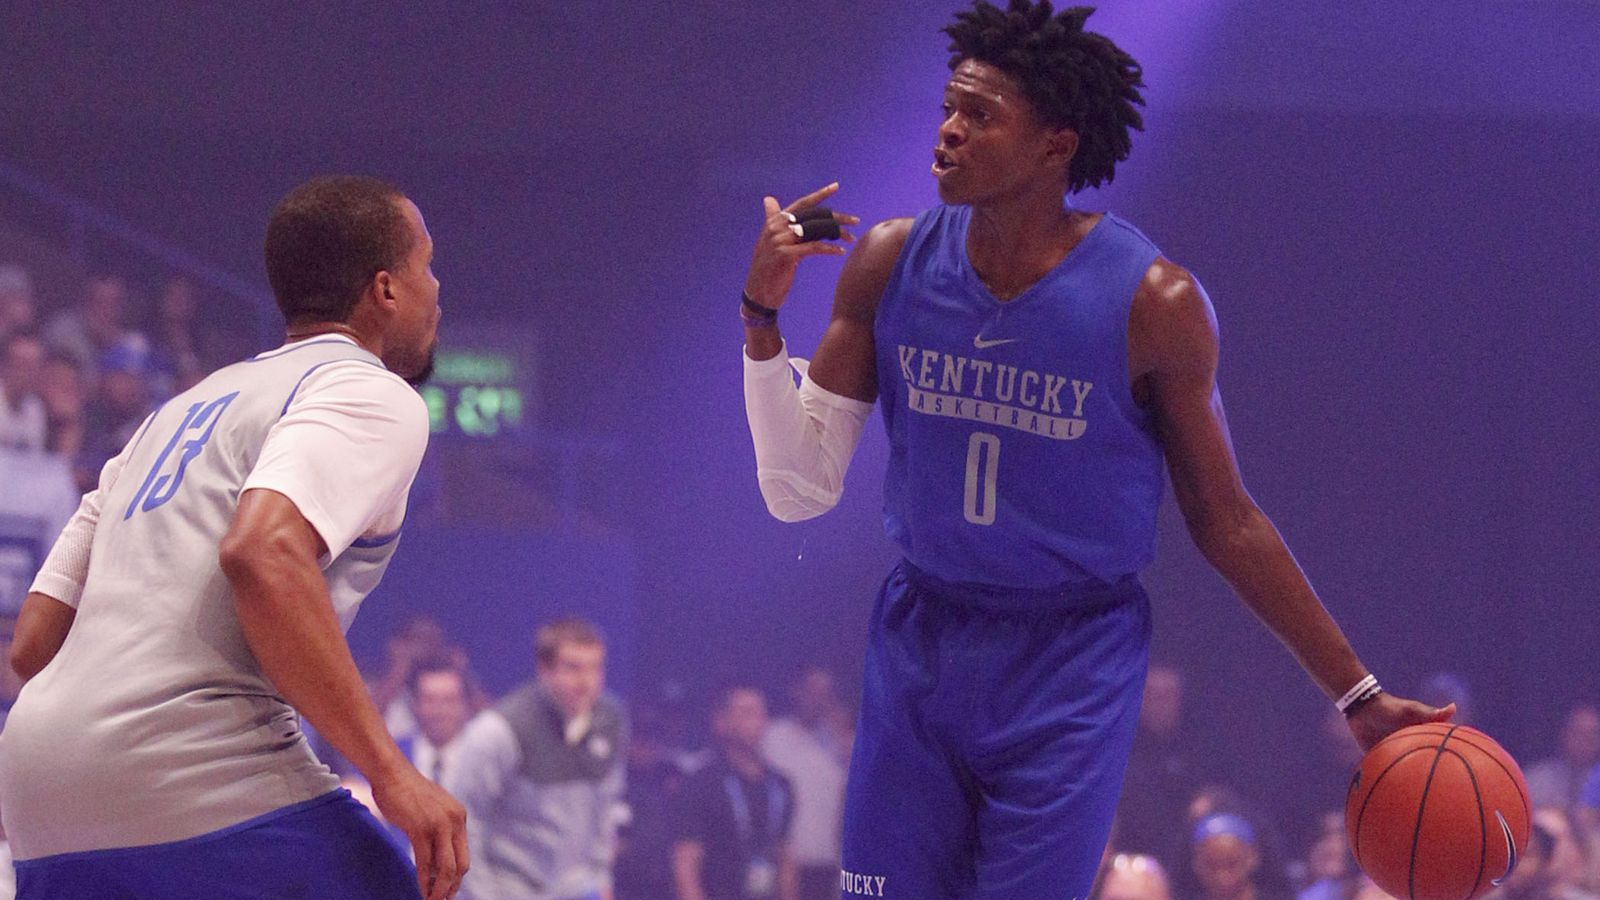 Espnu To Televise Uk Basketball Practice: Kentucky Basketball Blue-White Game: Start Time, TV Info